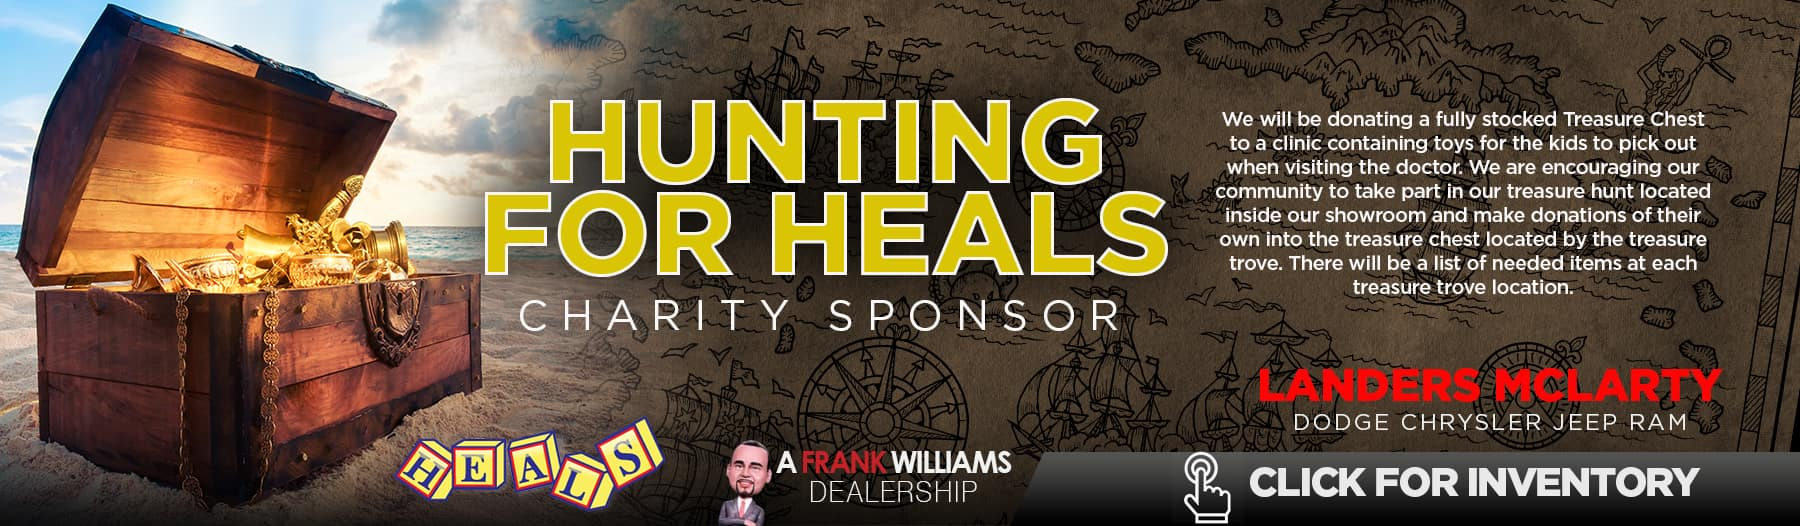 Hunting for heals